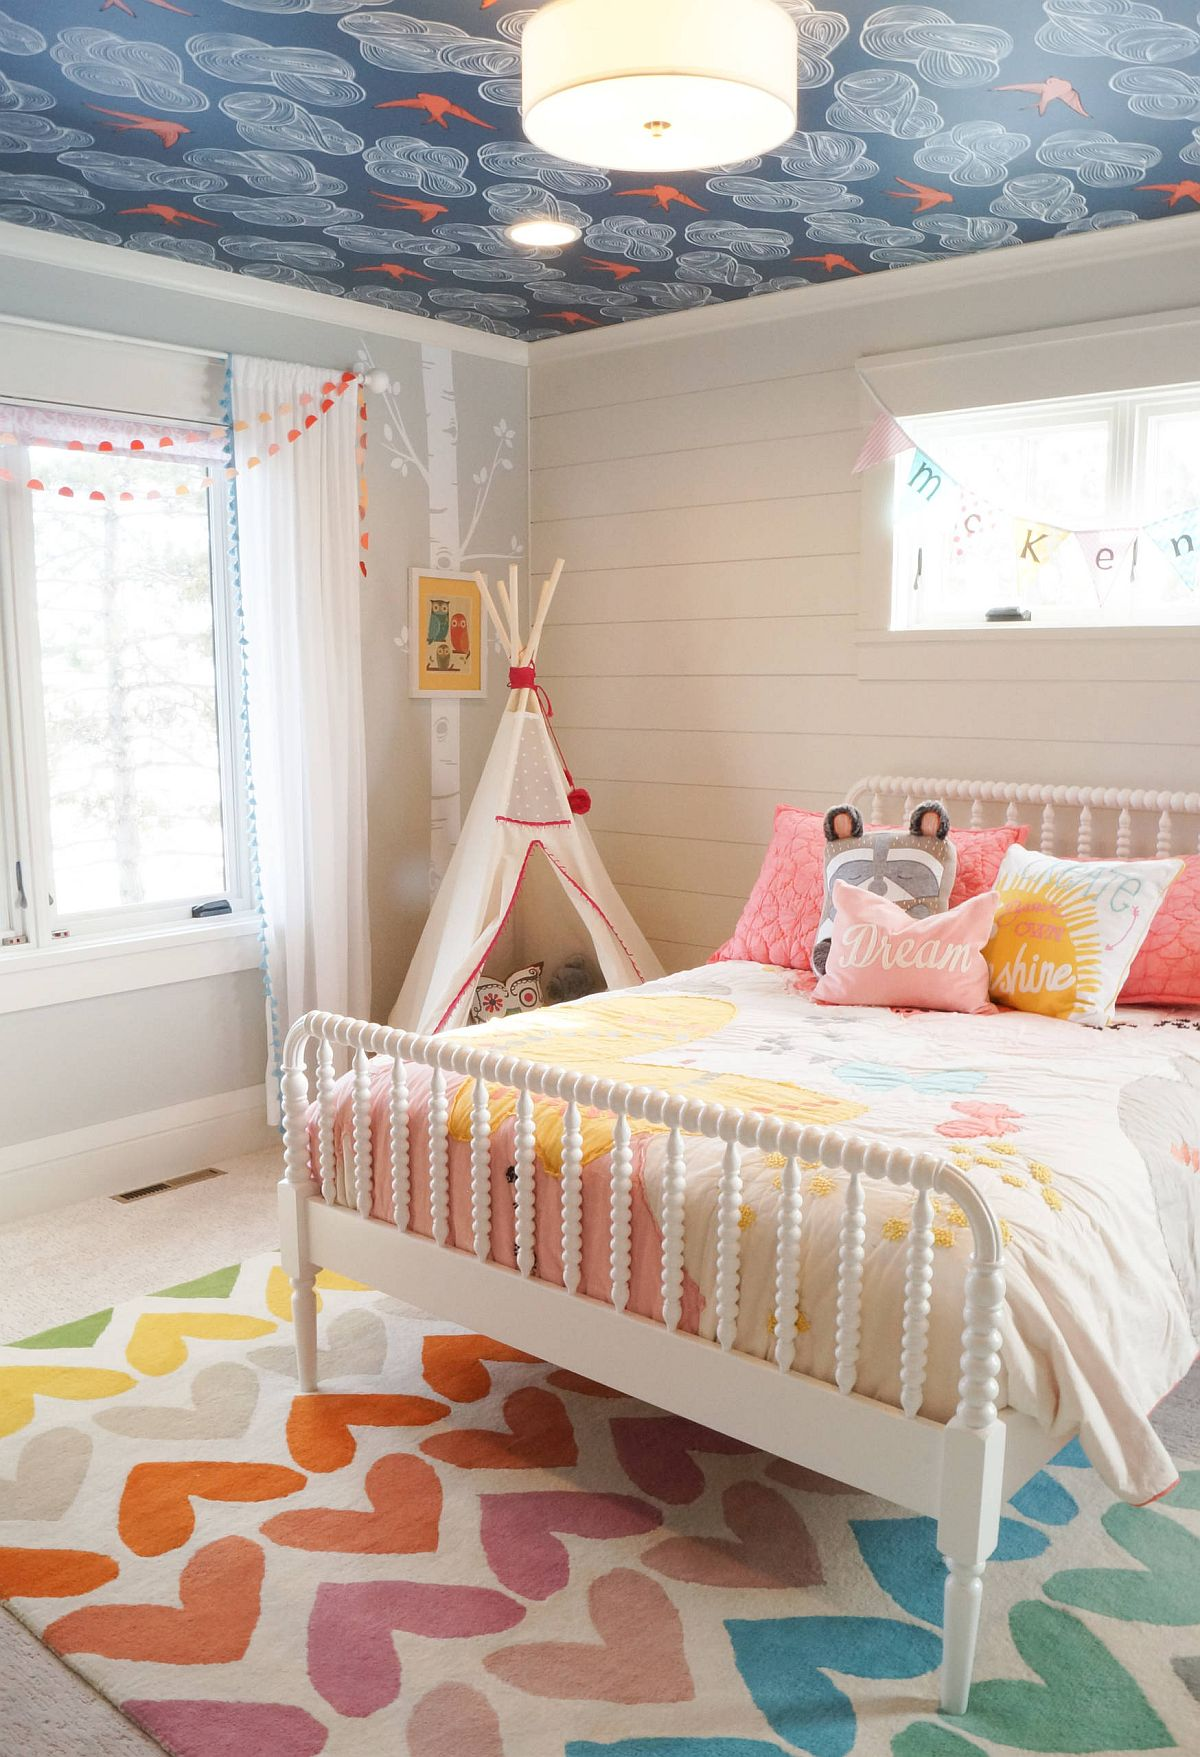 Popular wallpaper makes its way on to the ceiling in this kids' room even as the rug adds more color